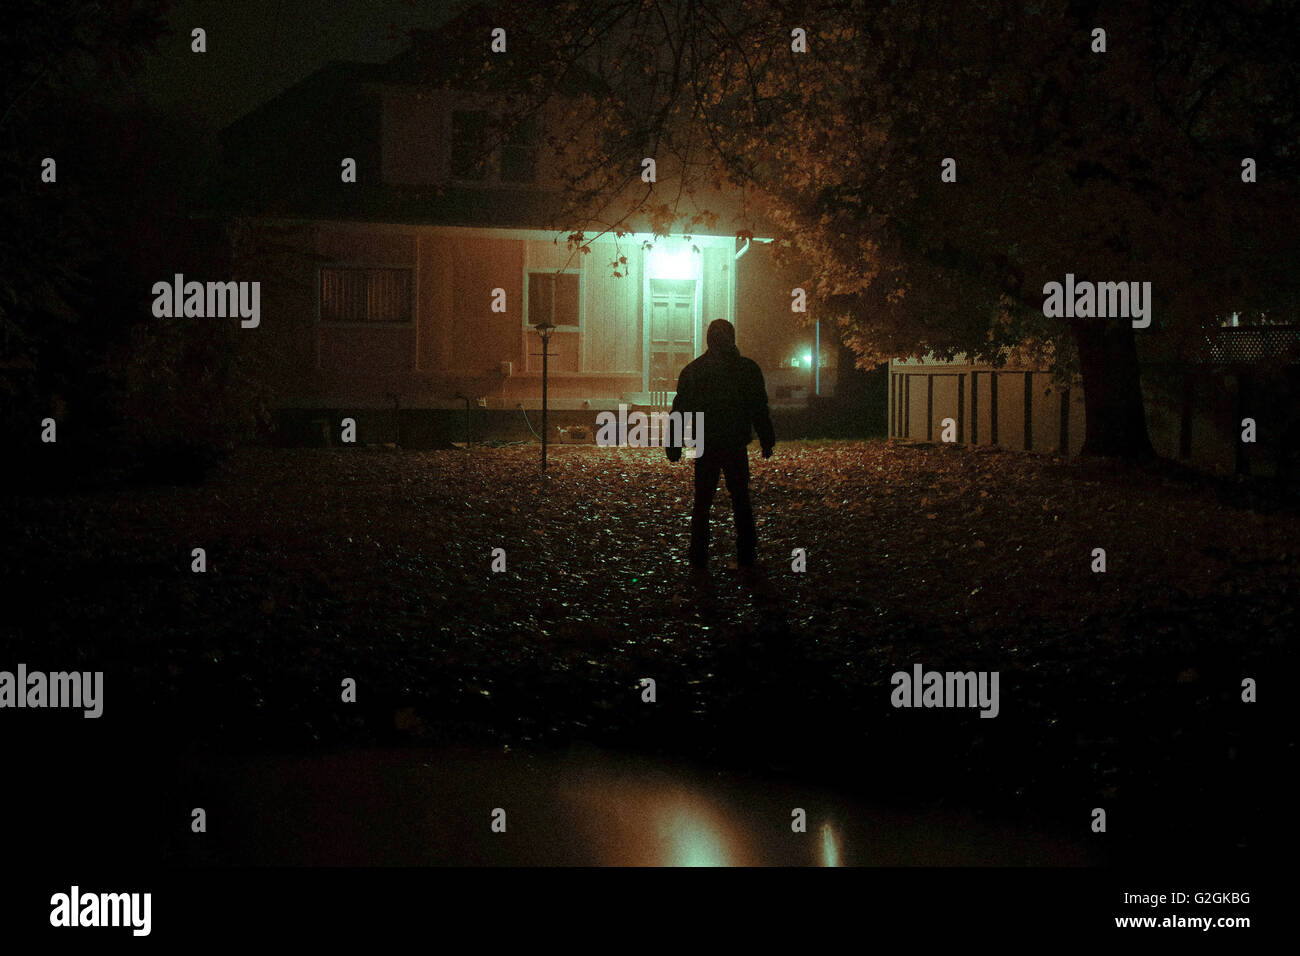 Mysterious Man Looking At House From Backyard At Night Stock Photo Alamy